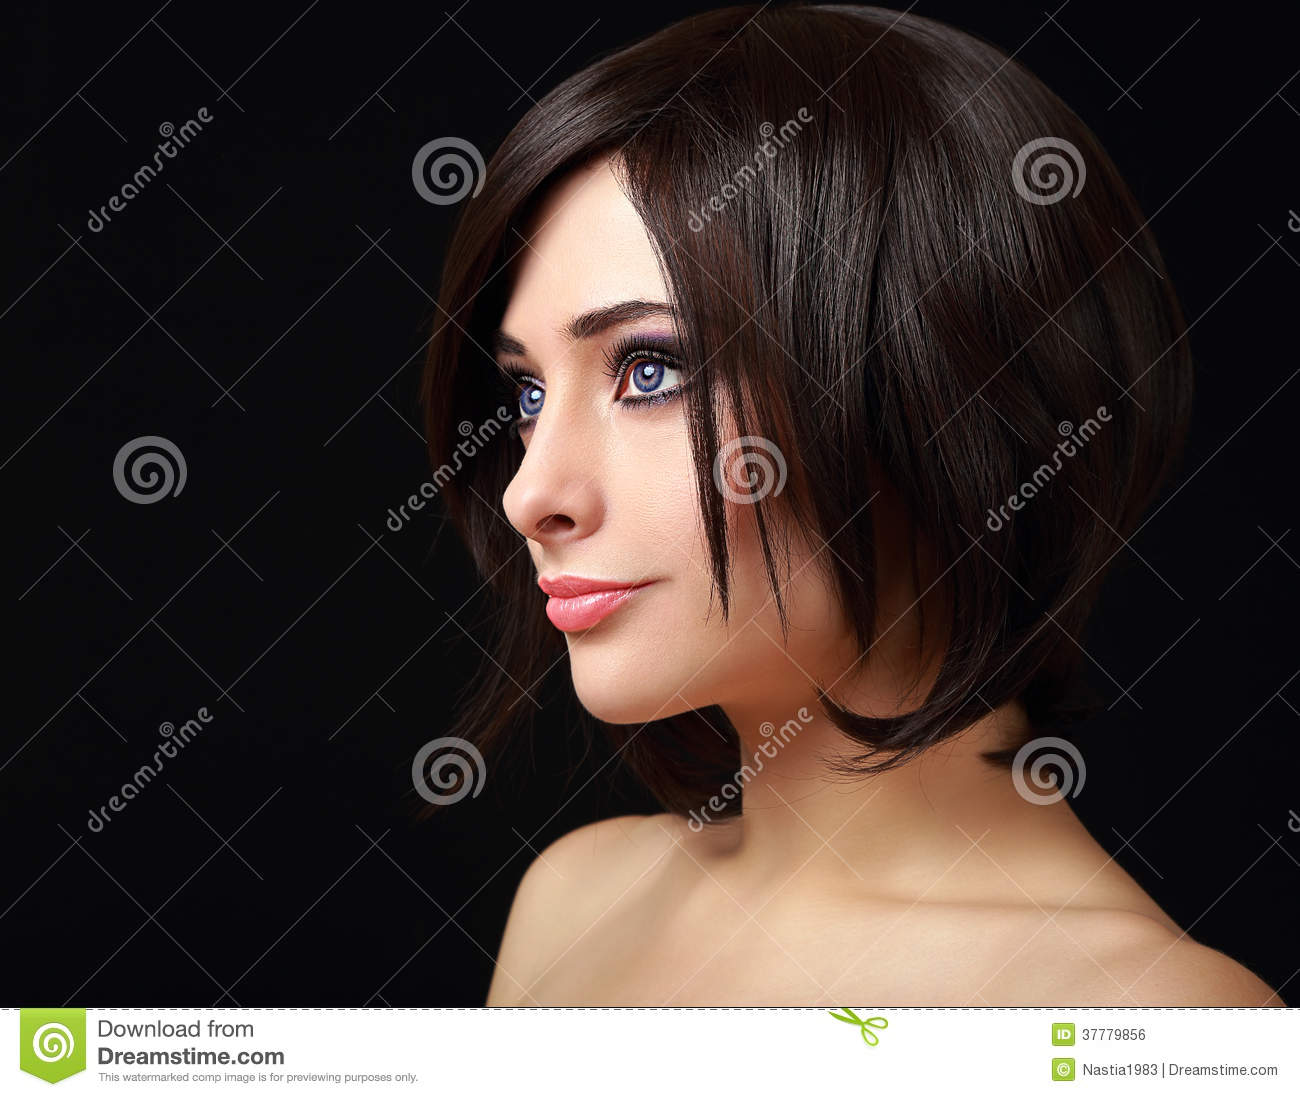 c618417cf88 Woman Face Profile With Short Black Stock Photo - Image of lips ...